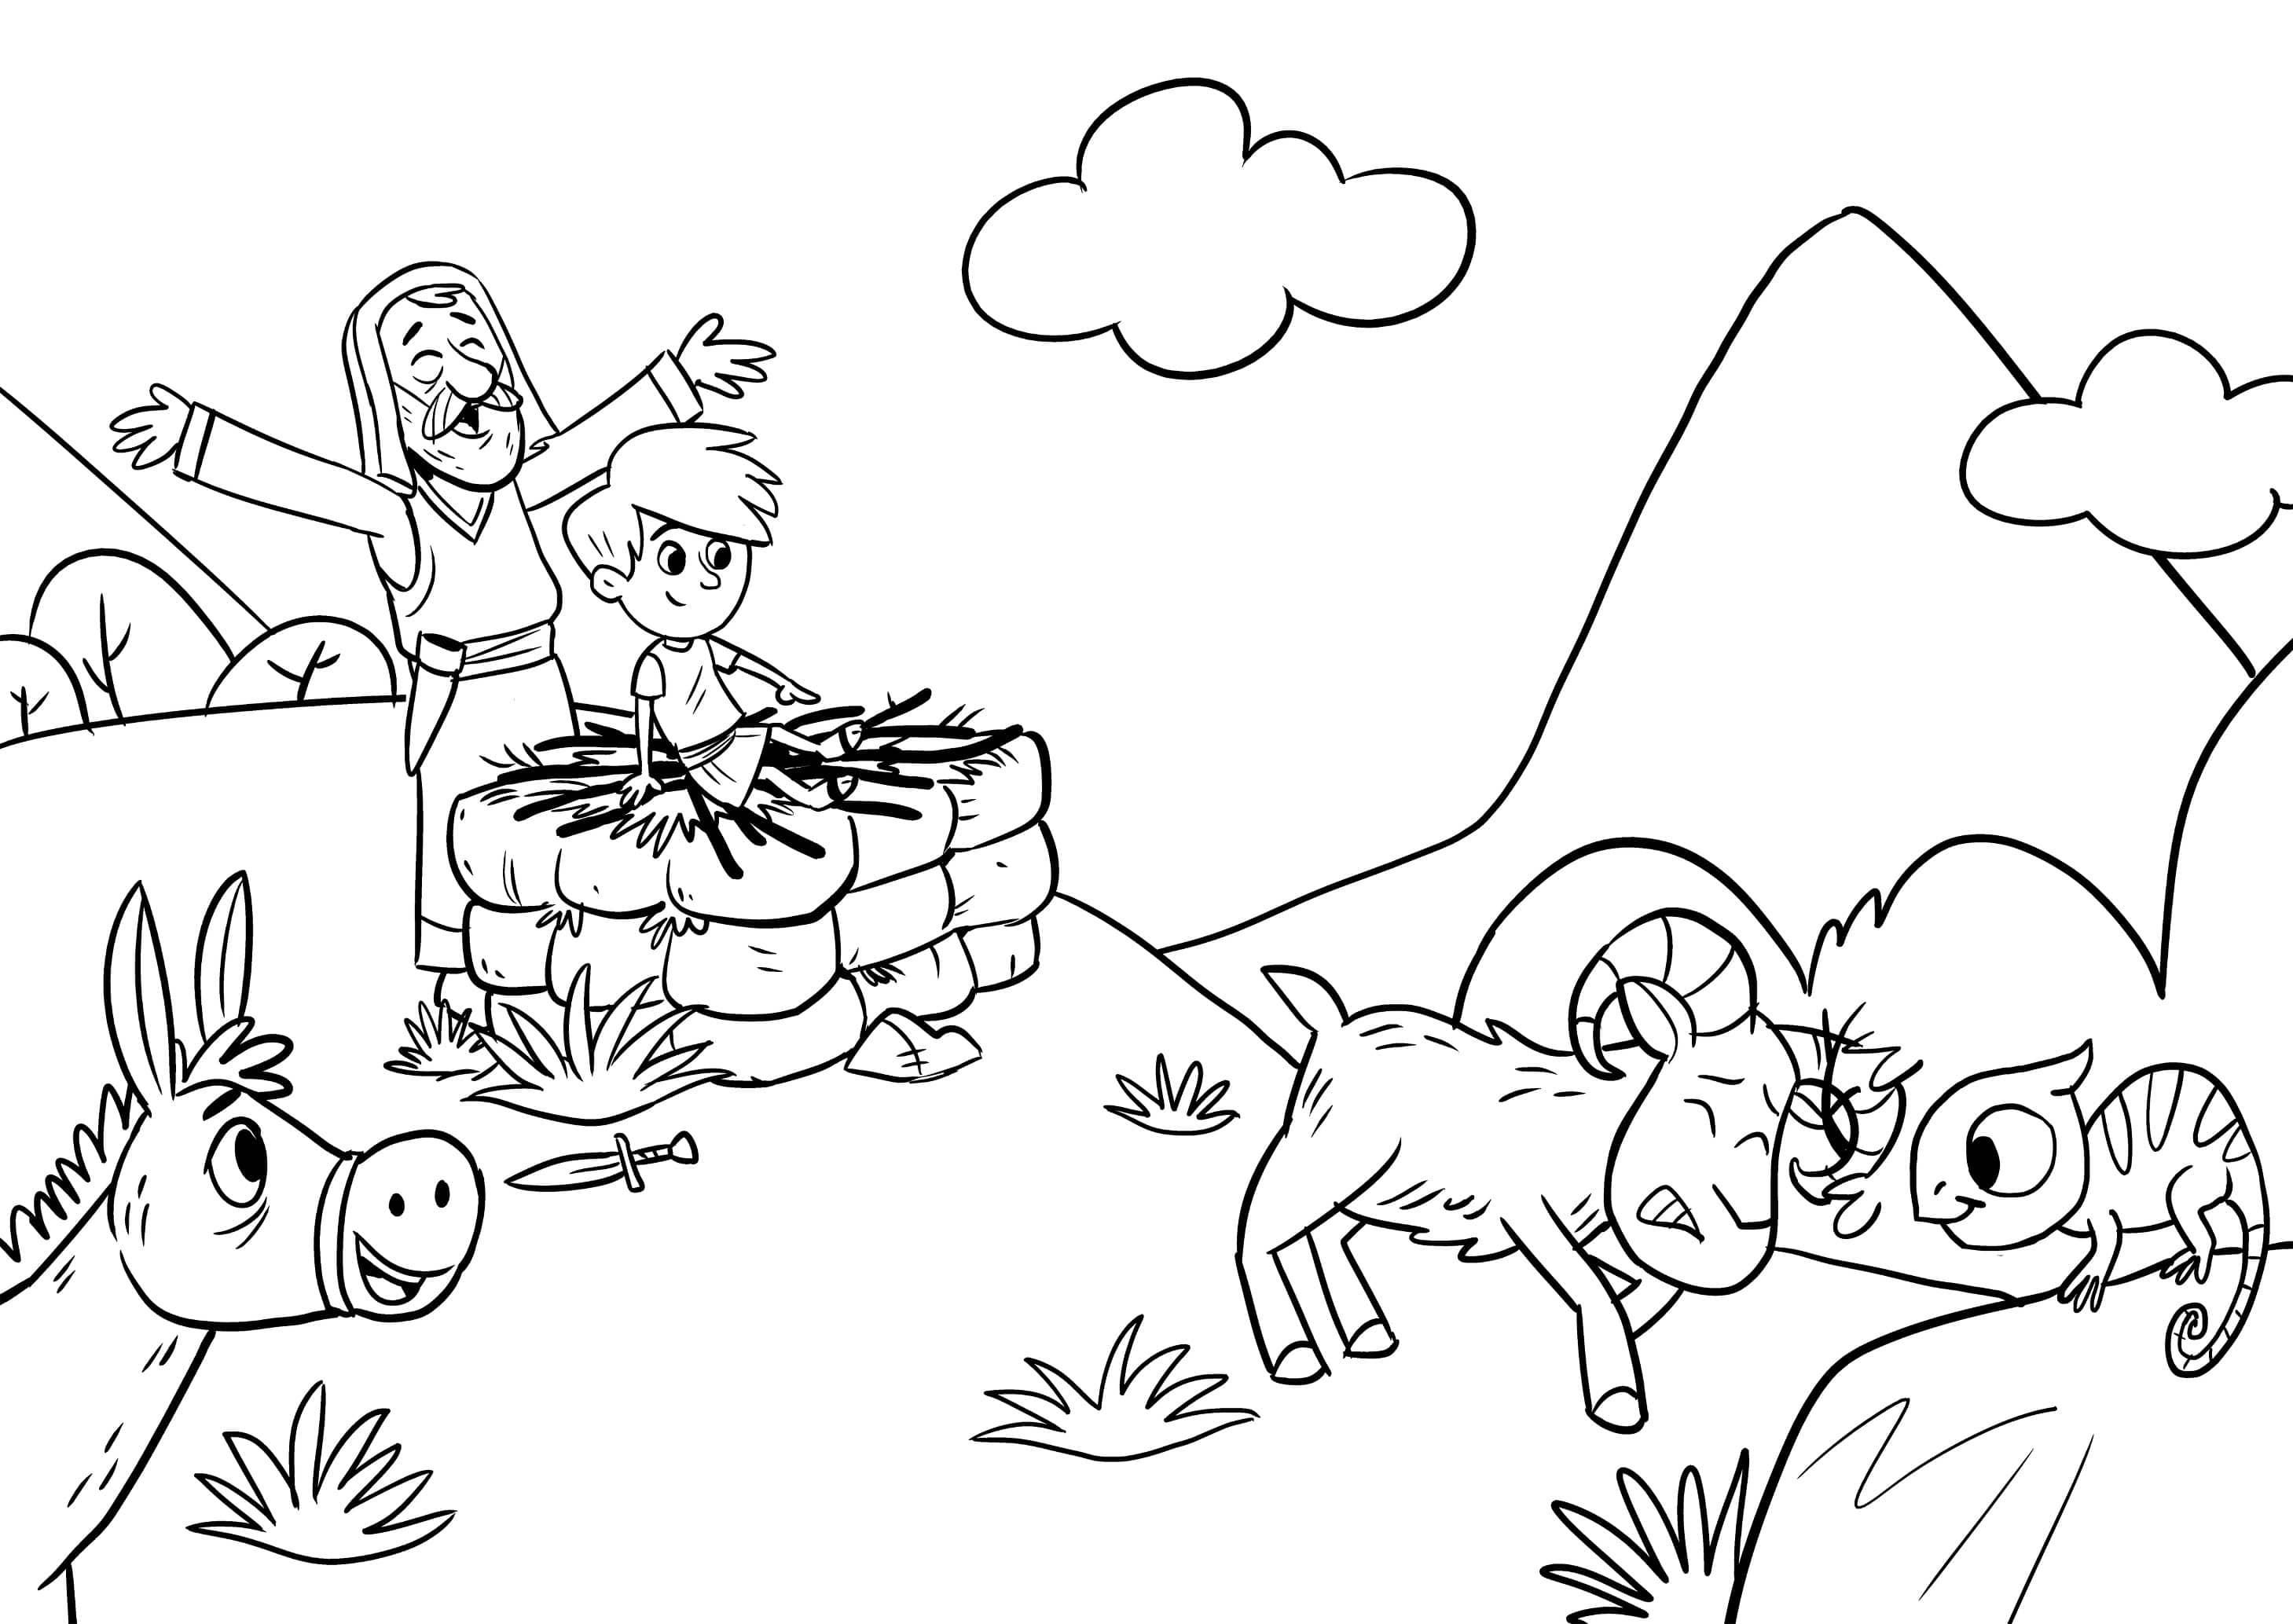 Coloring Page Abraham And Isaac Detailed Coloring Pages Monster Truck Coloring Pages Coloring Pages